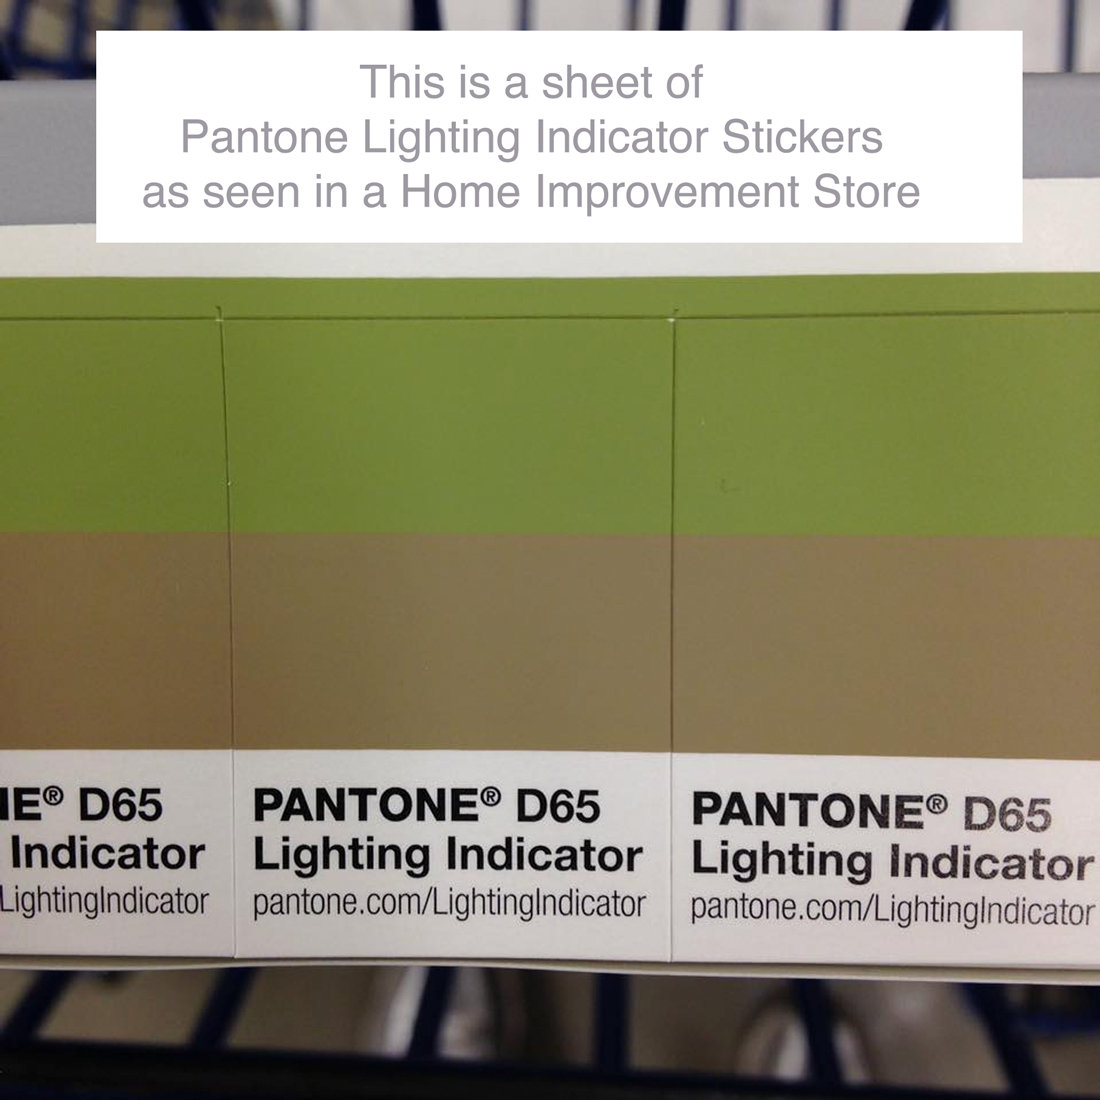 pantone-lighting-indicator